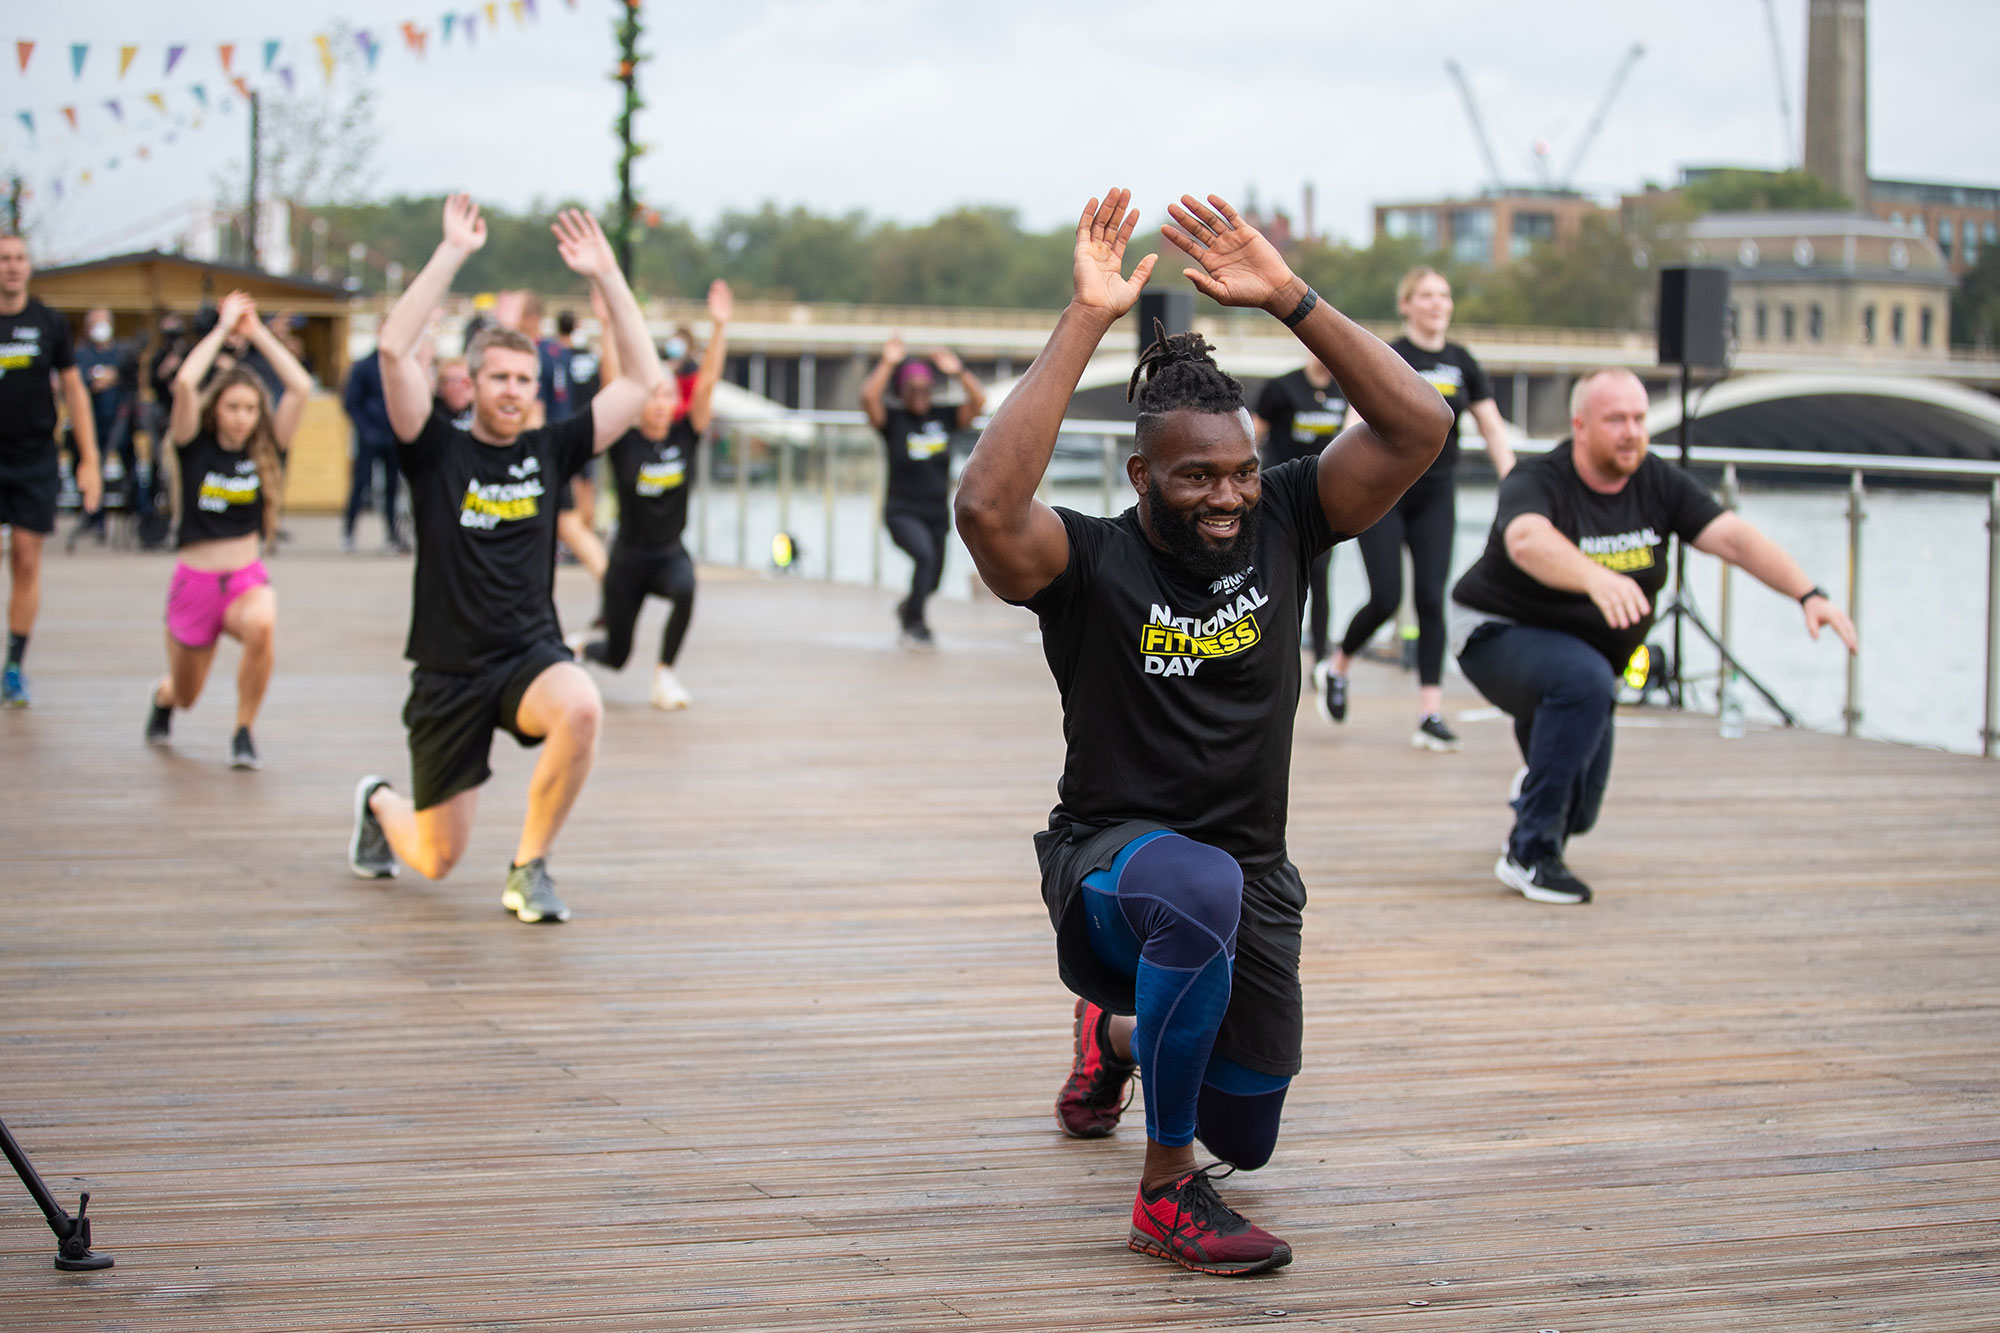 Industry celebrates 10th anniversary of National Fitness Day as ukactive announces new award in honour of founder Jan Spaticchia